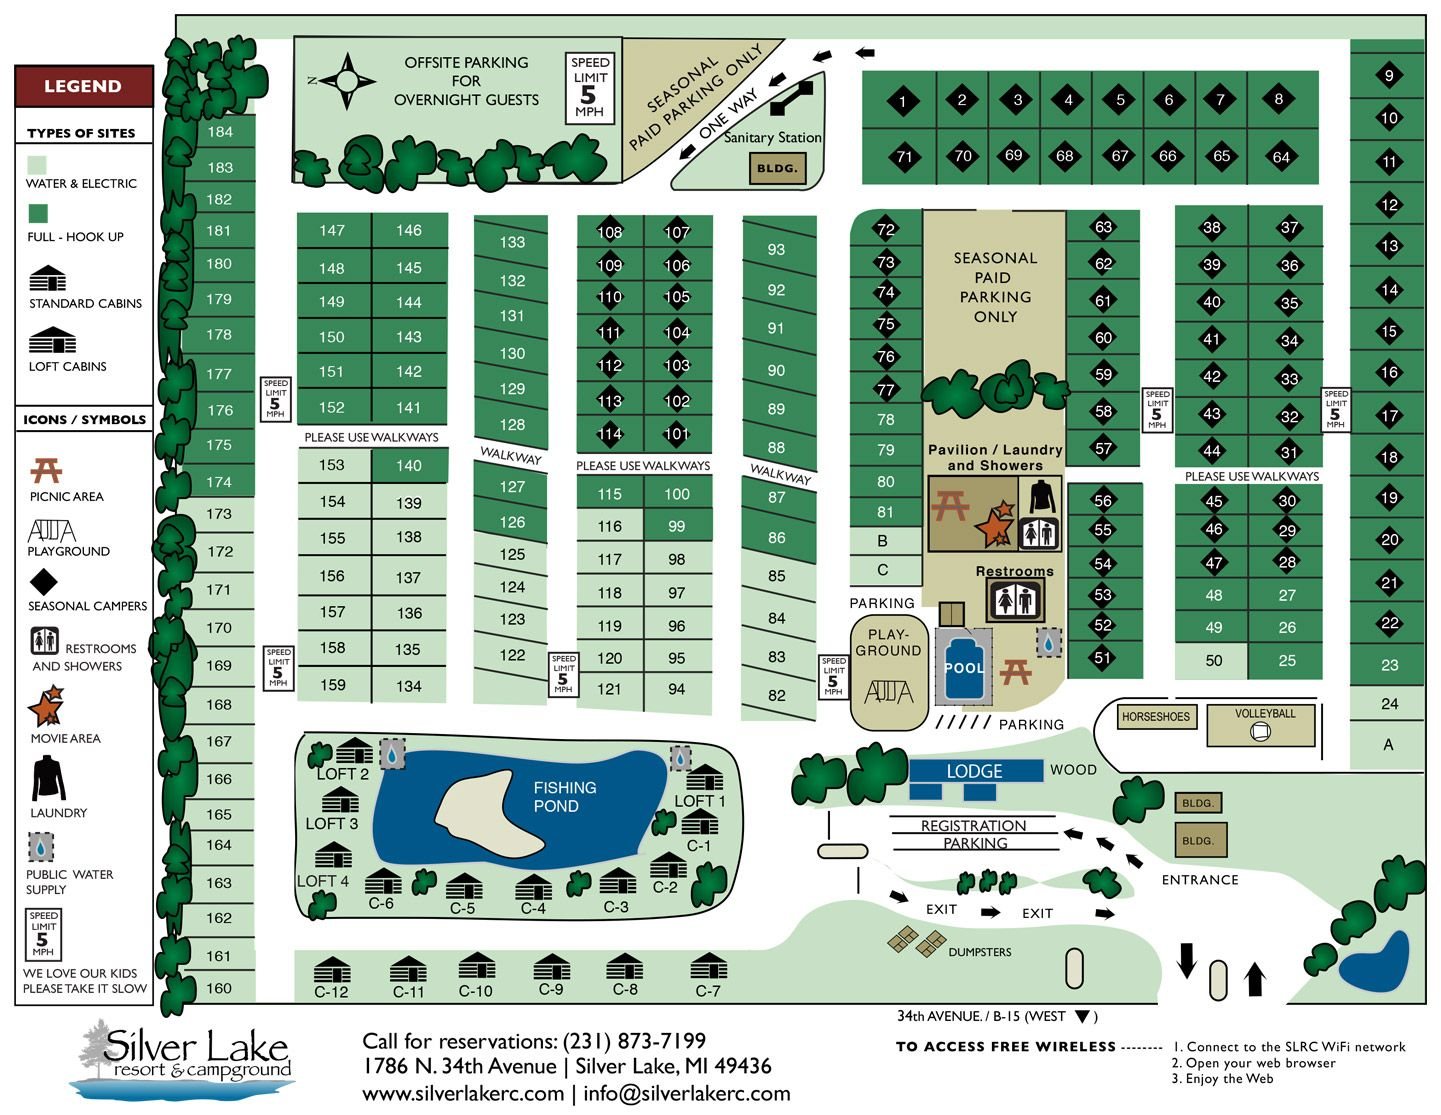 silver lake campground map Rates Map Silver Lake Resort Camping Locations Silver Lake silver lake campground map